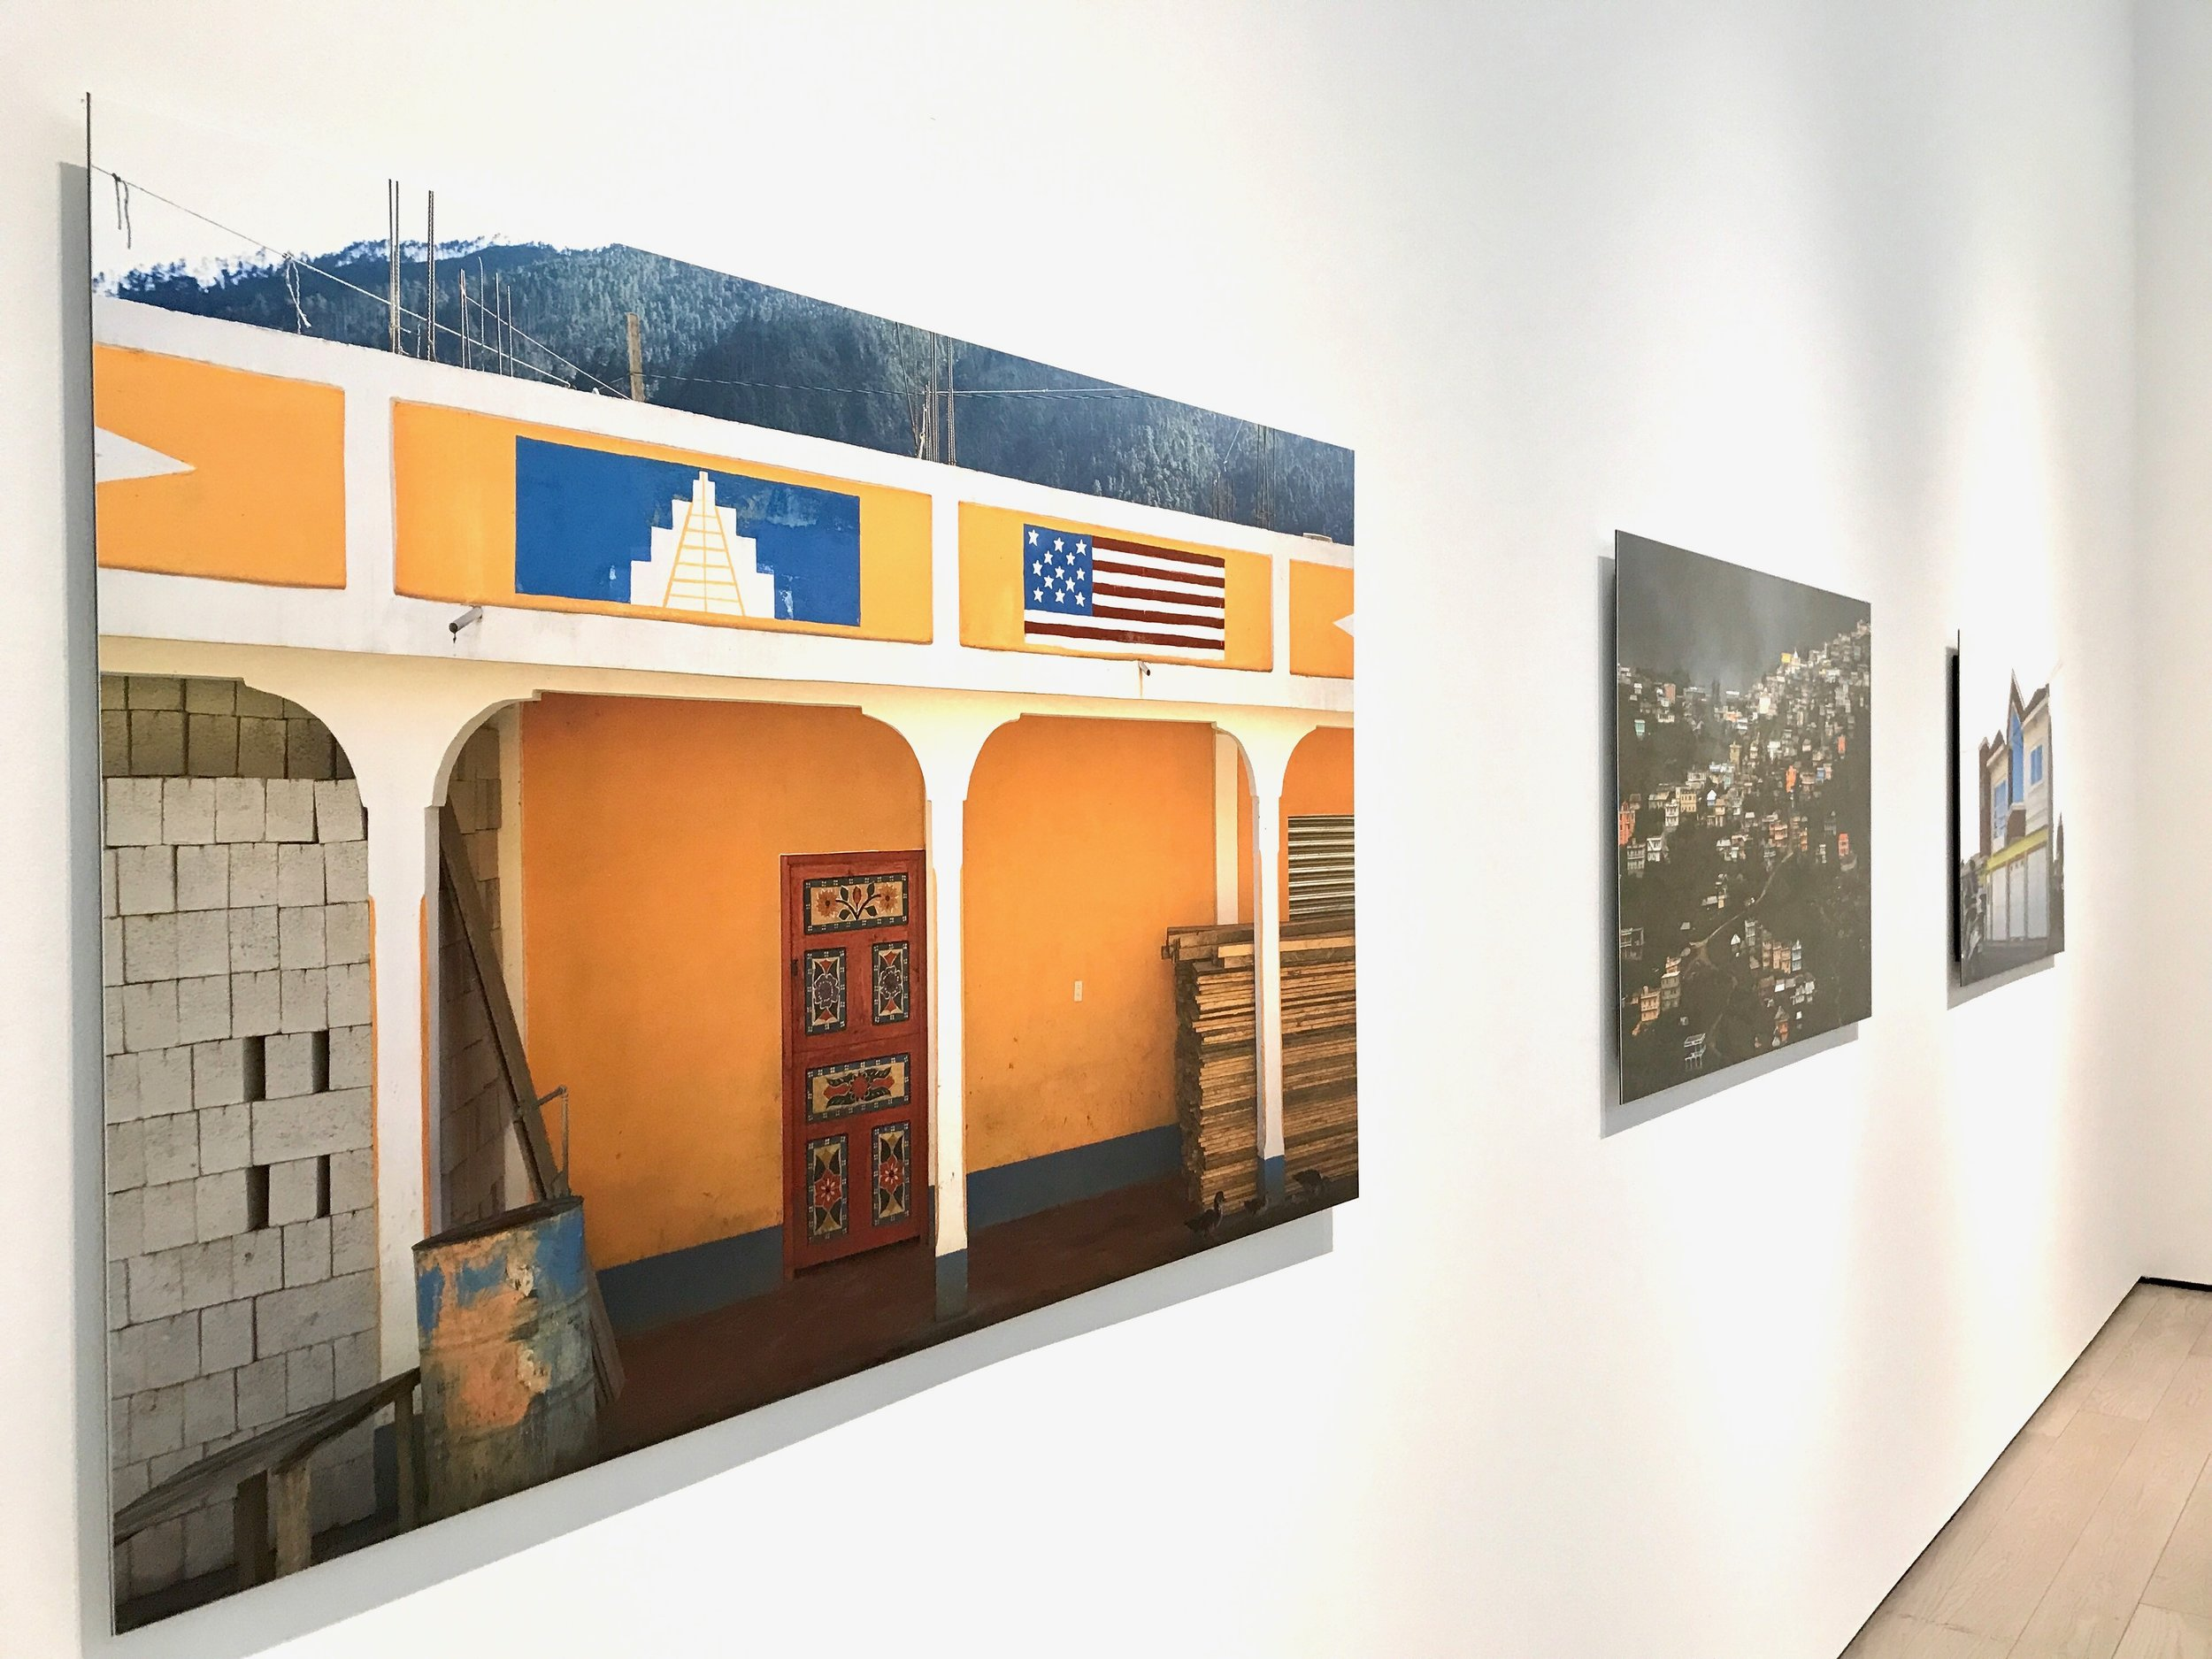 Installation view  HOME - So Different, So Appealing , at LACMA. (Hermosa Journal)